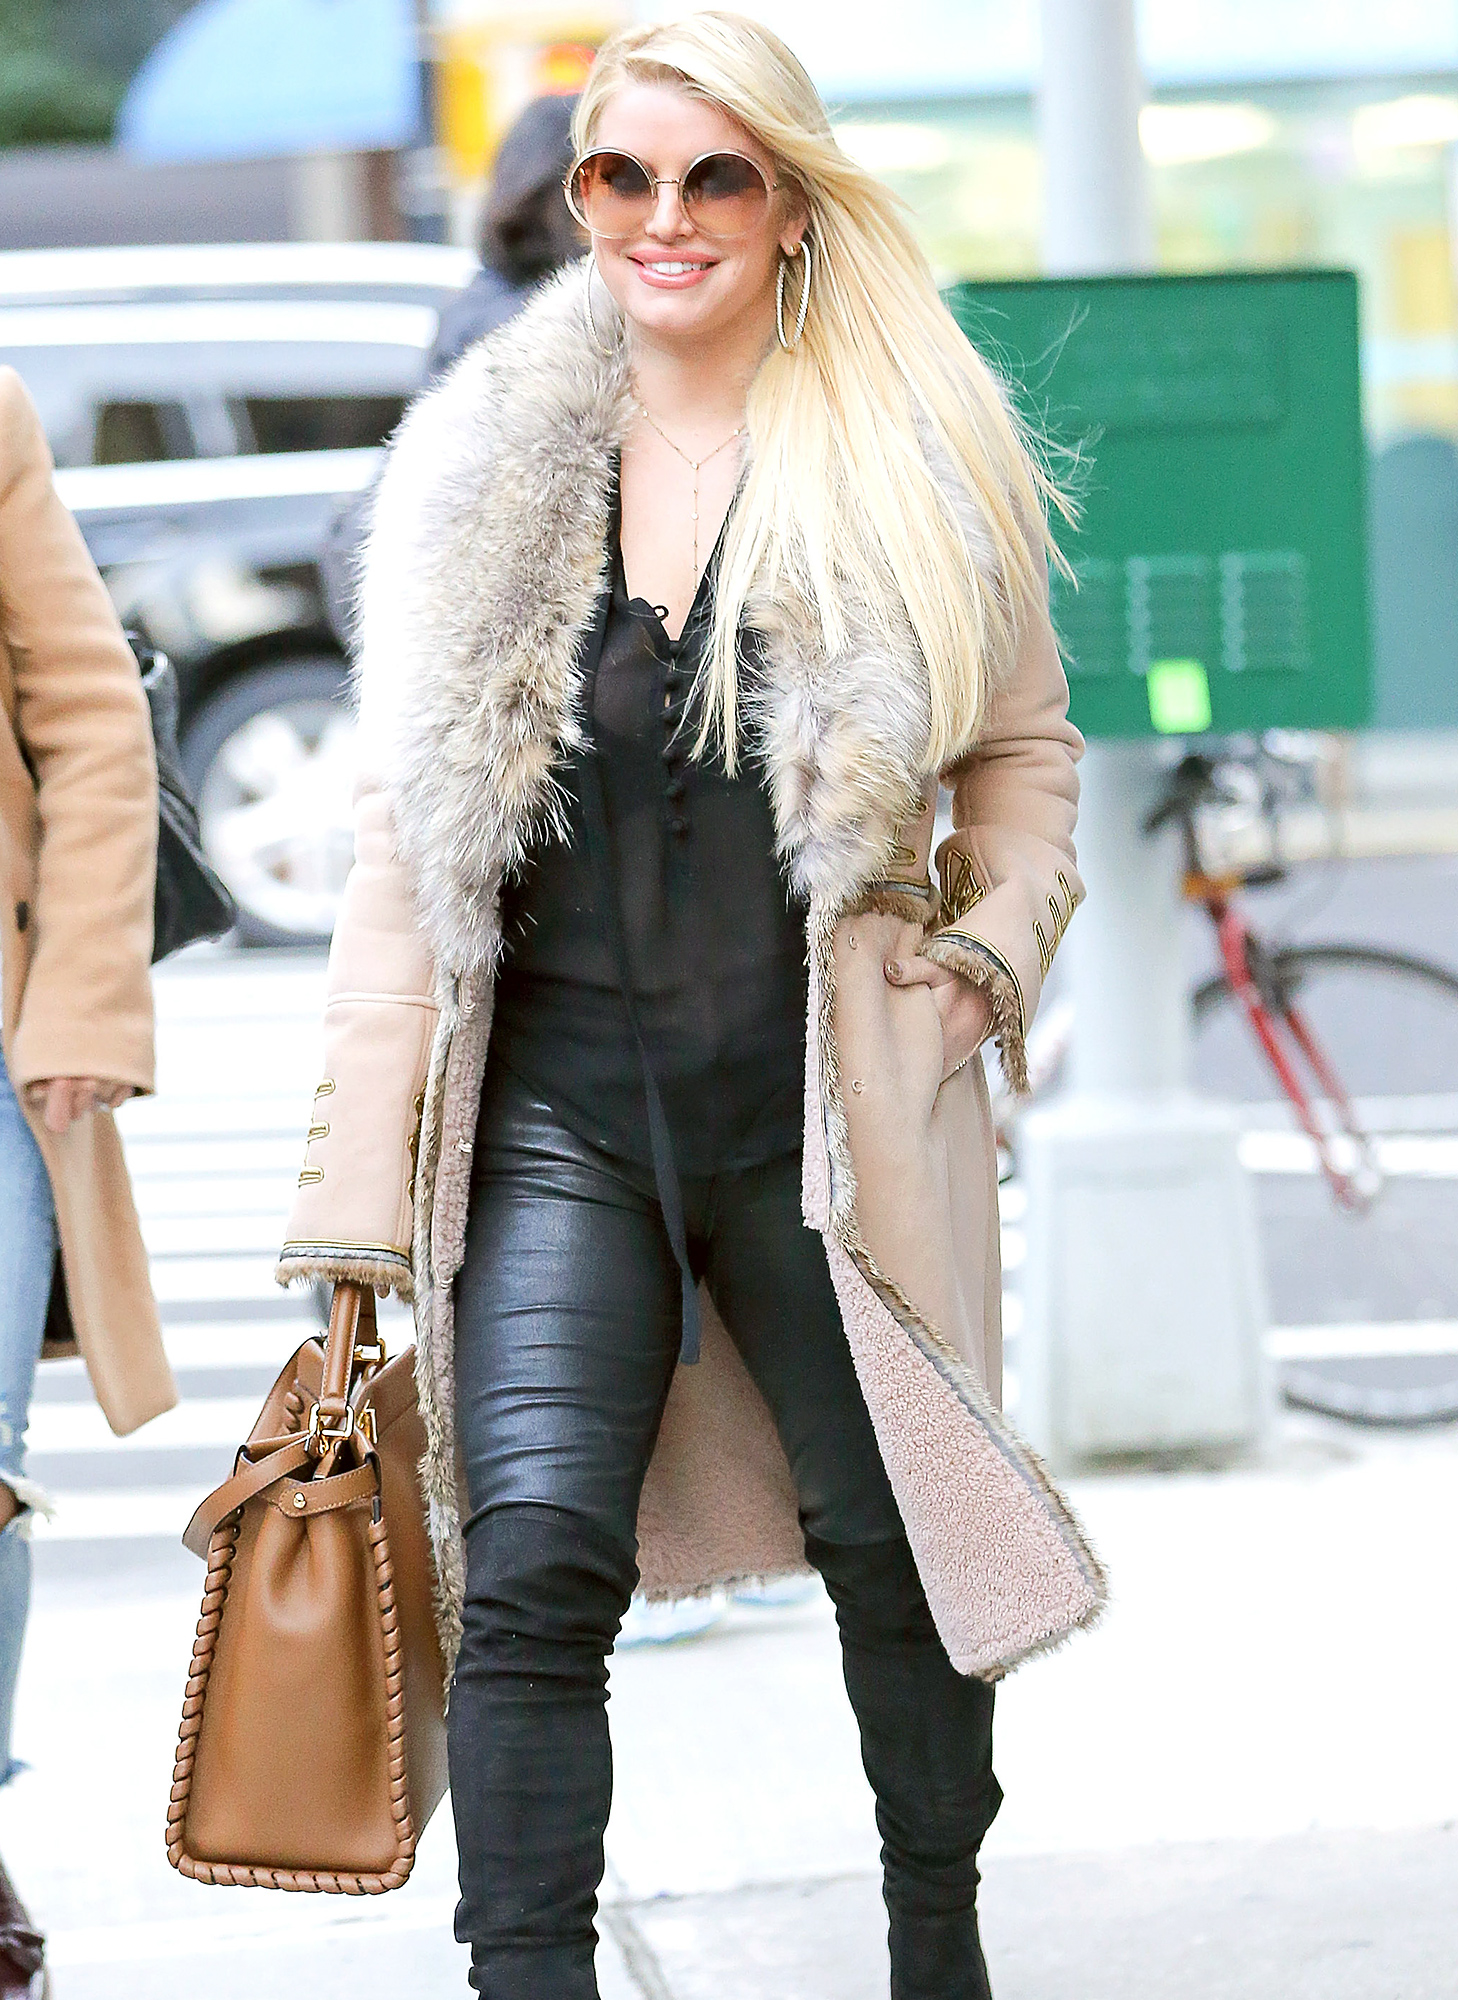 Jessica Simpson is all smiling while leaving Rosa Mexicano restaurant in New York City